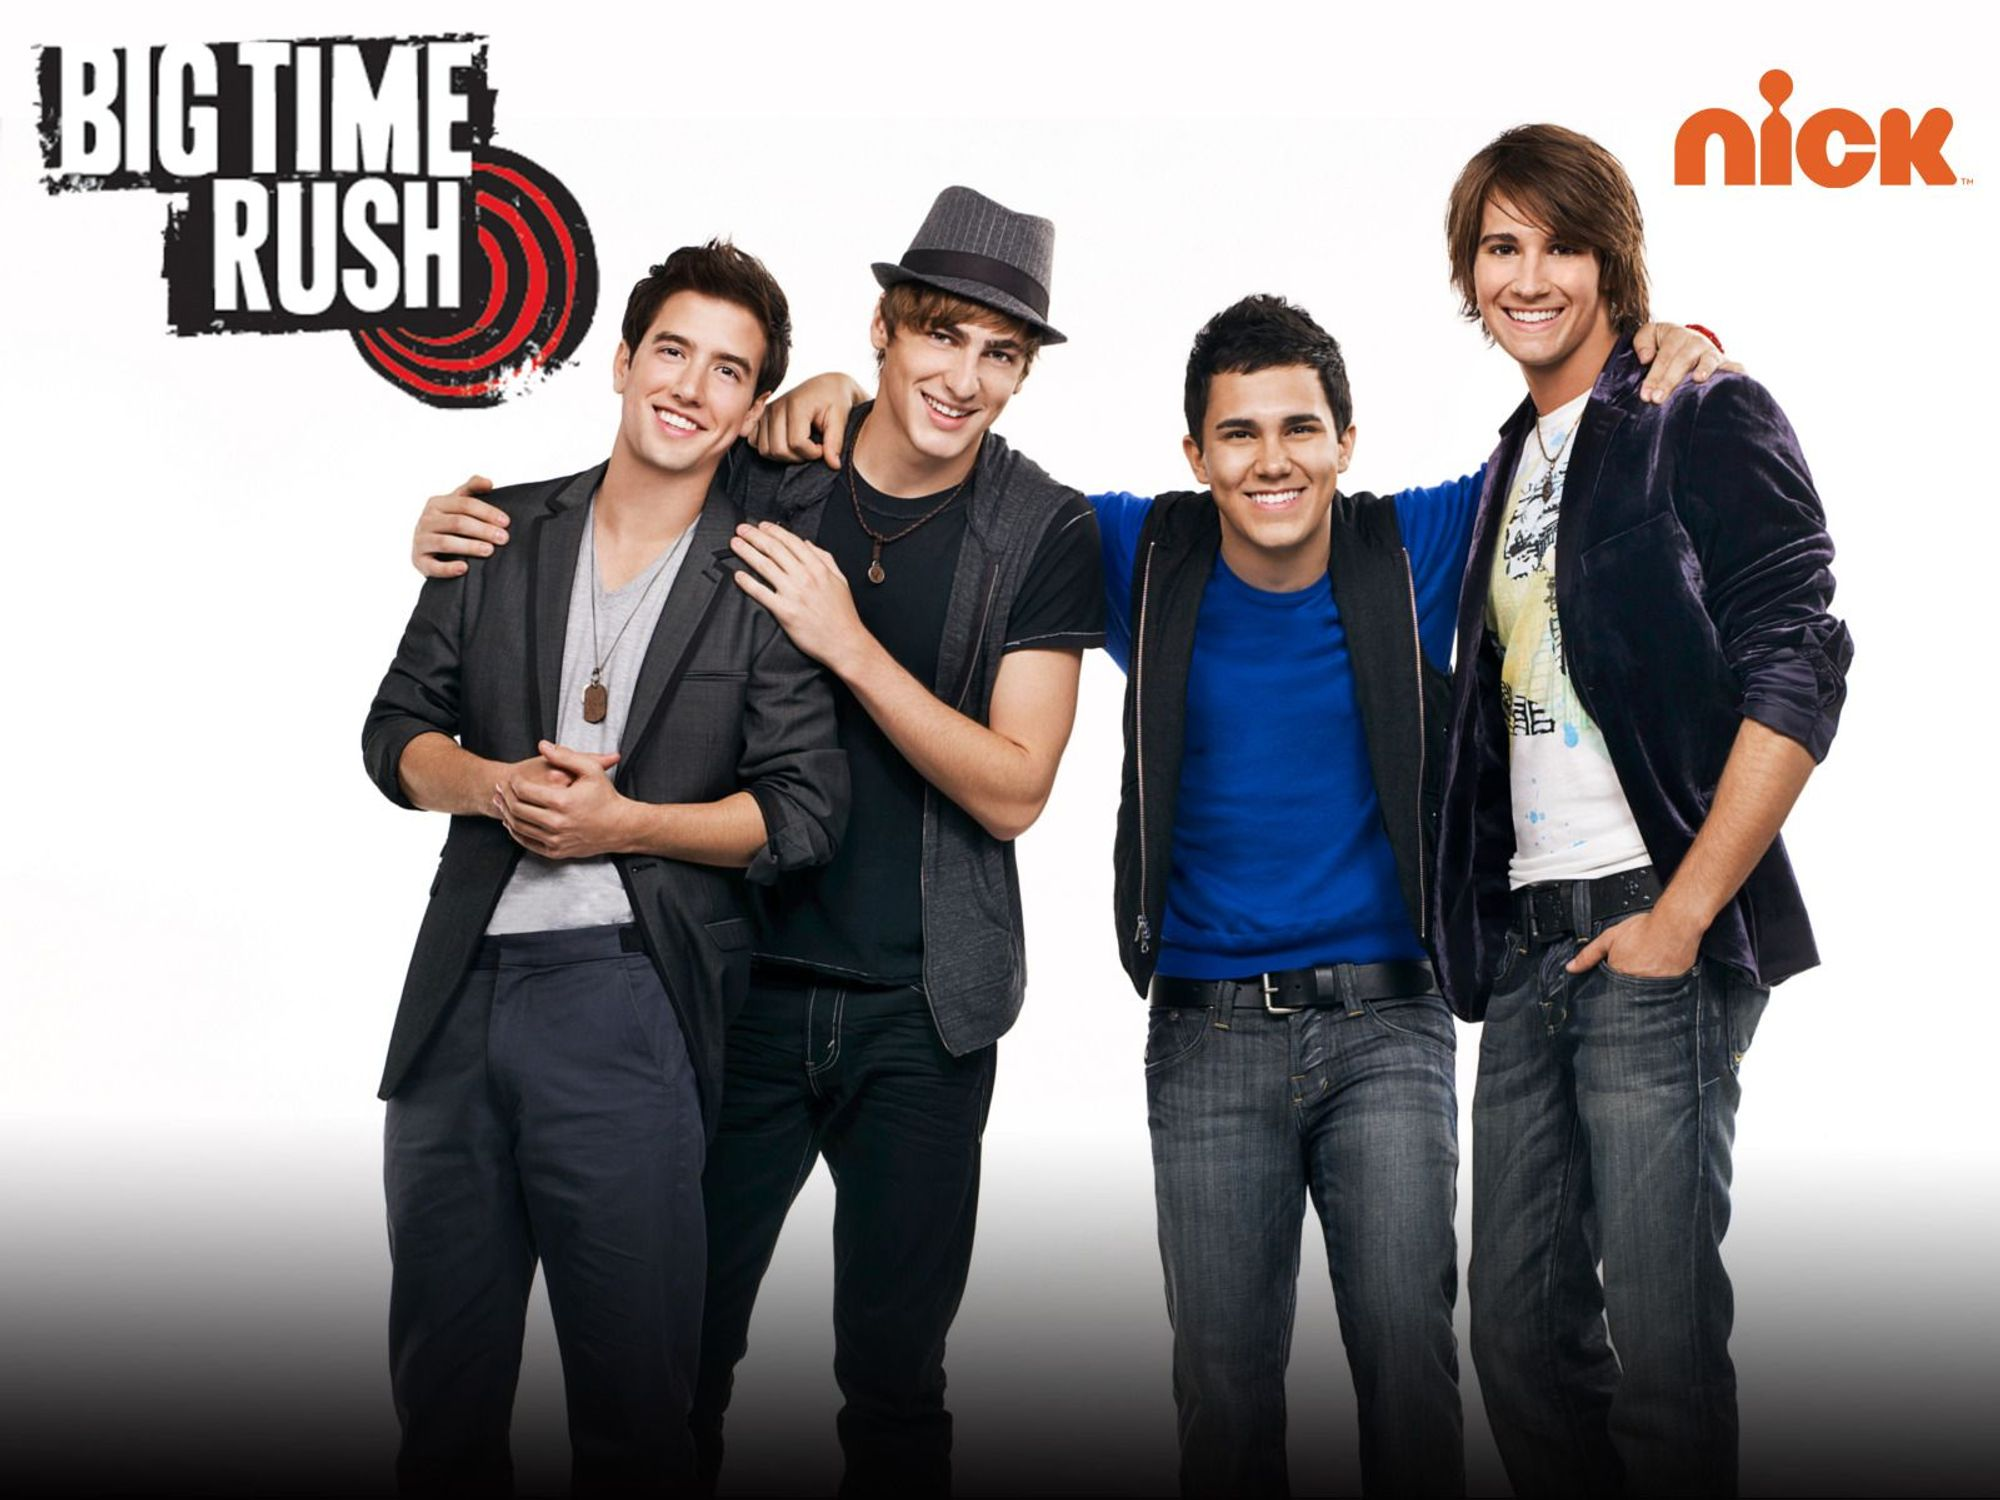 How to Watch Big Time Rush on Netflix - Best VPNs To Use